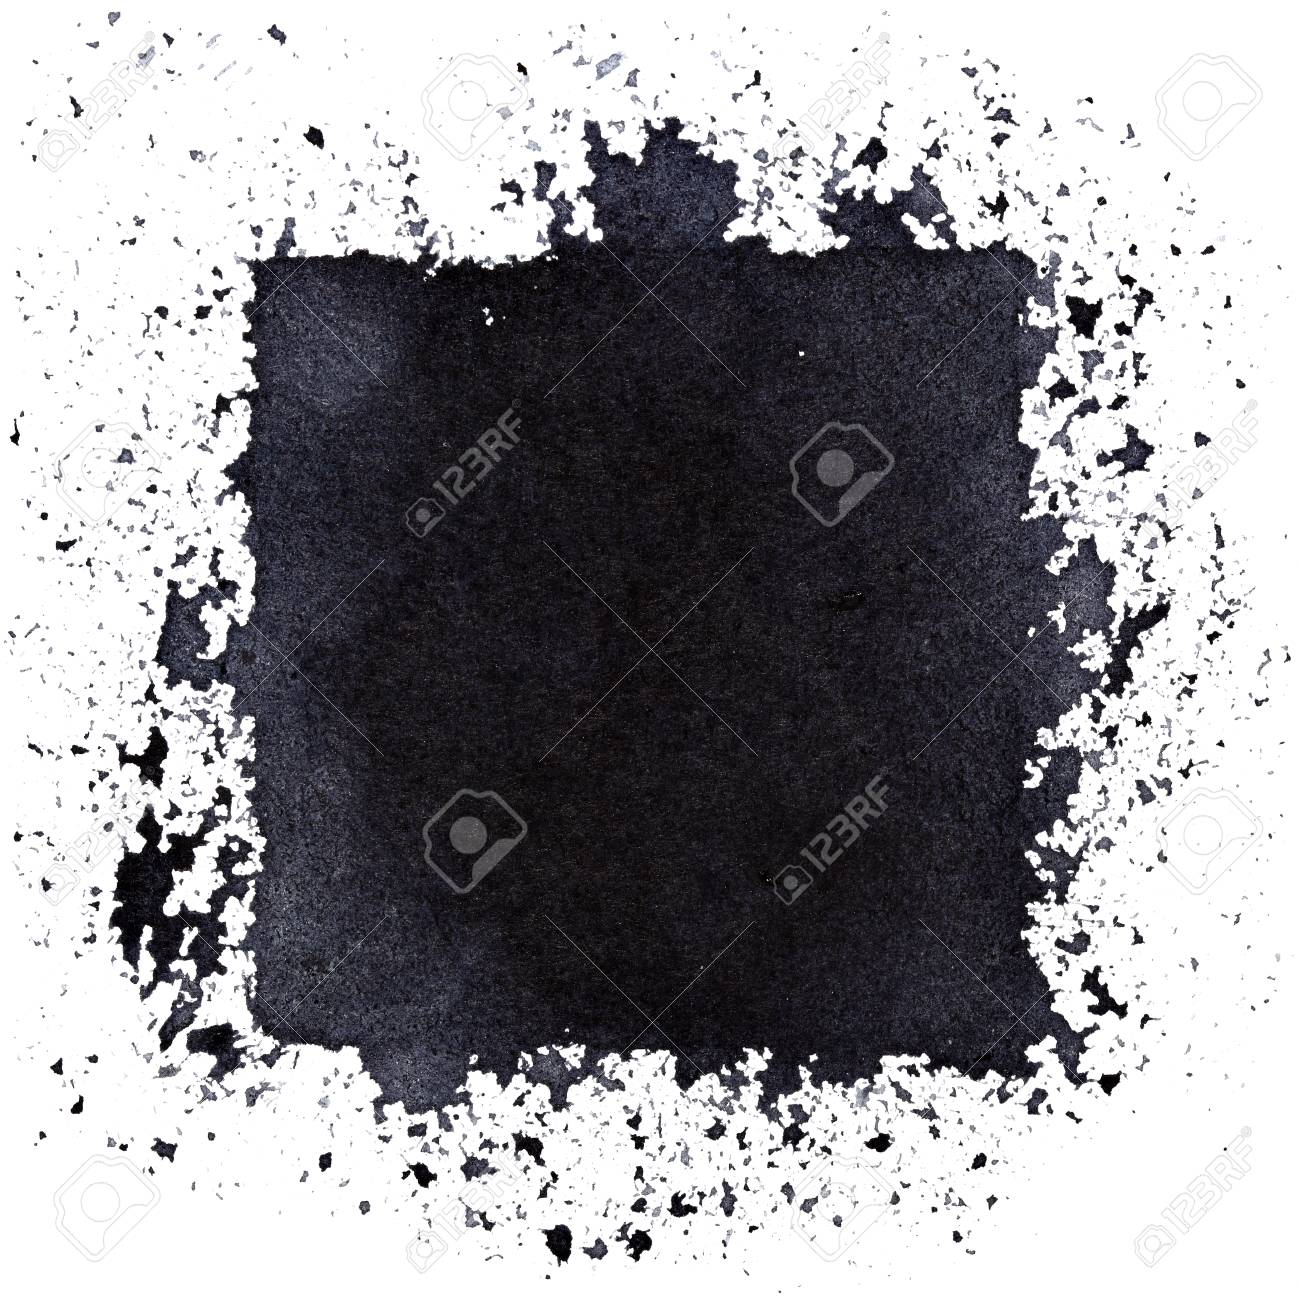 Grunge black square. Street art style abstract background. Space for your own text. Raster illustration - 73321750